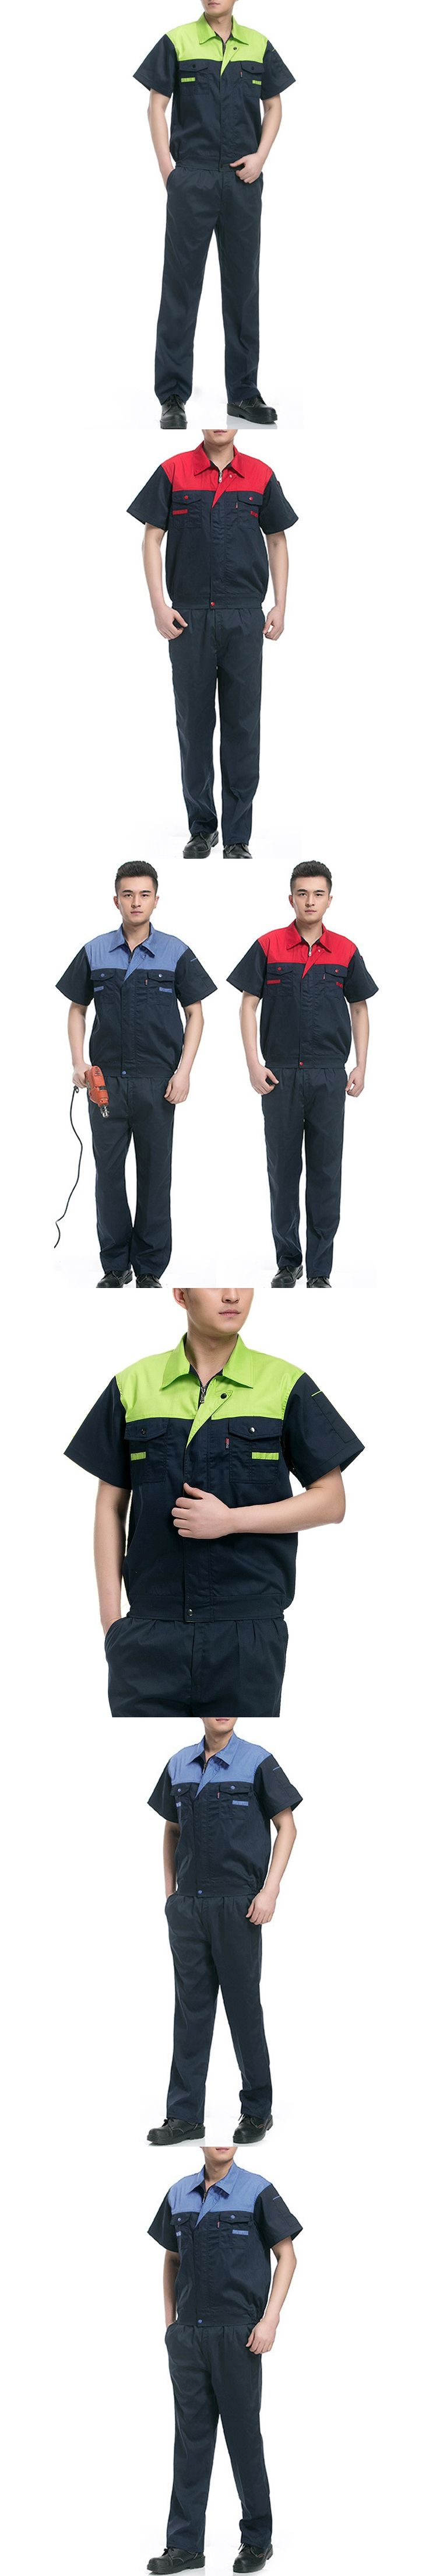 Men's Set Summer Work Clothes Safety Workwear Engineering Welding Uniform Work Clothing Short Sleeve Tops + Pants